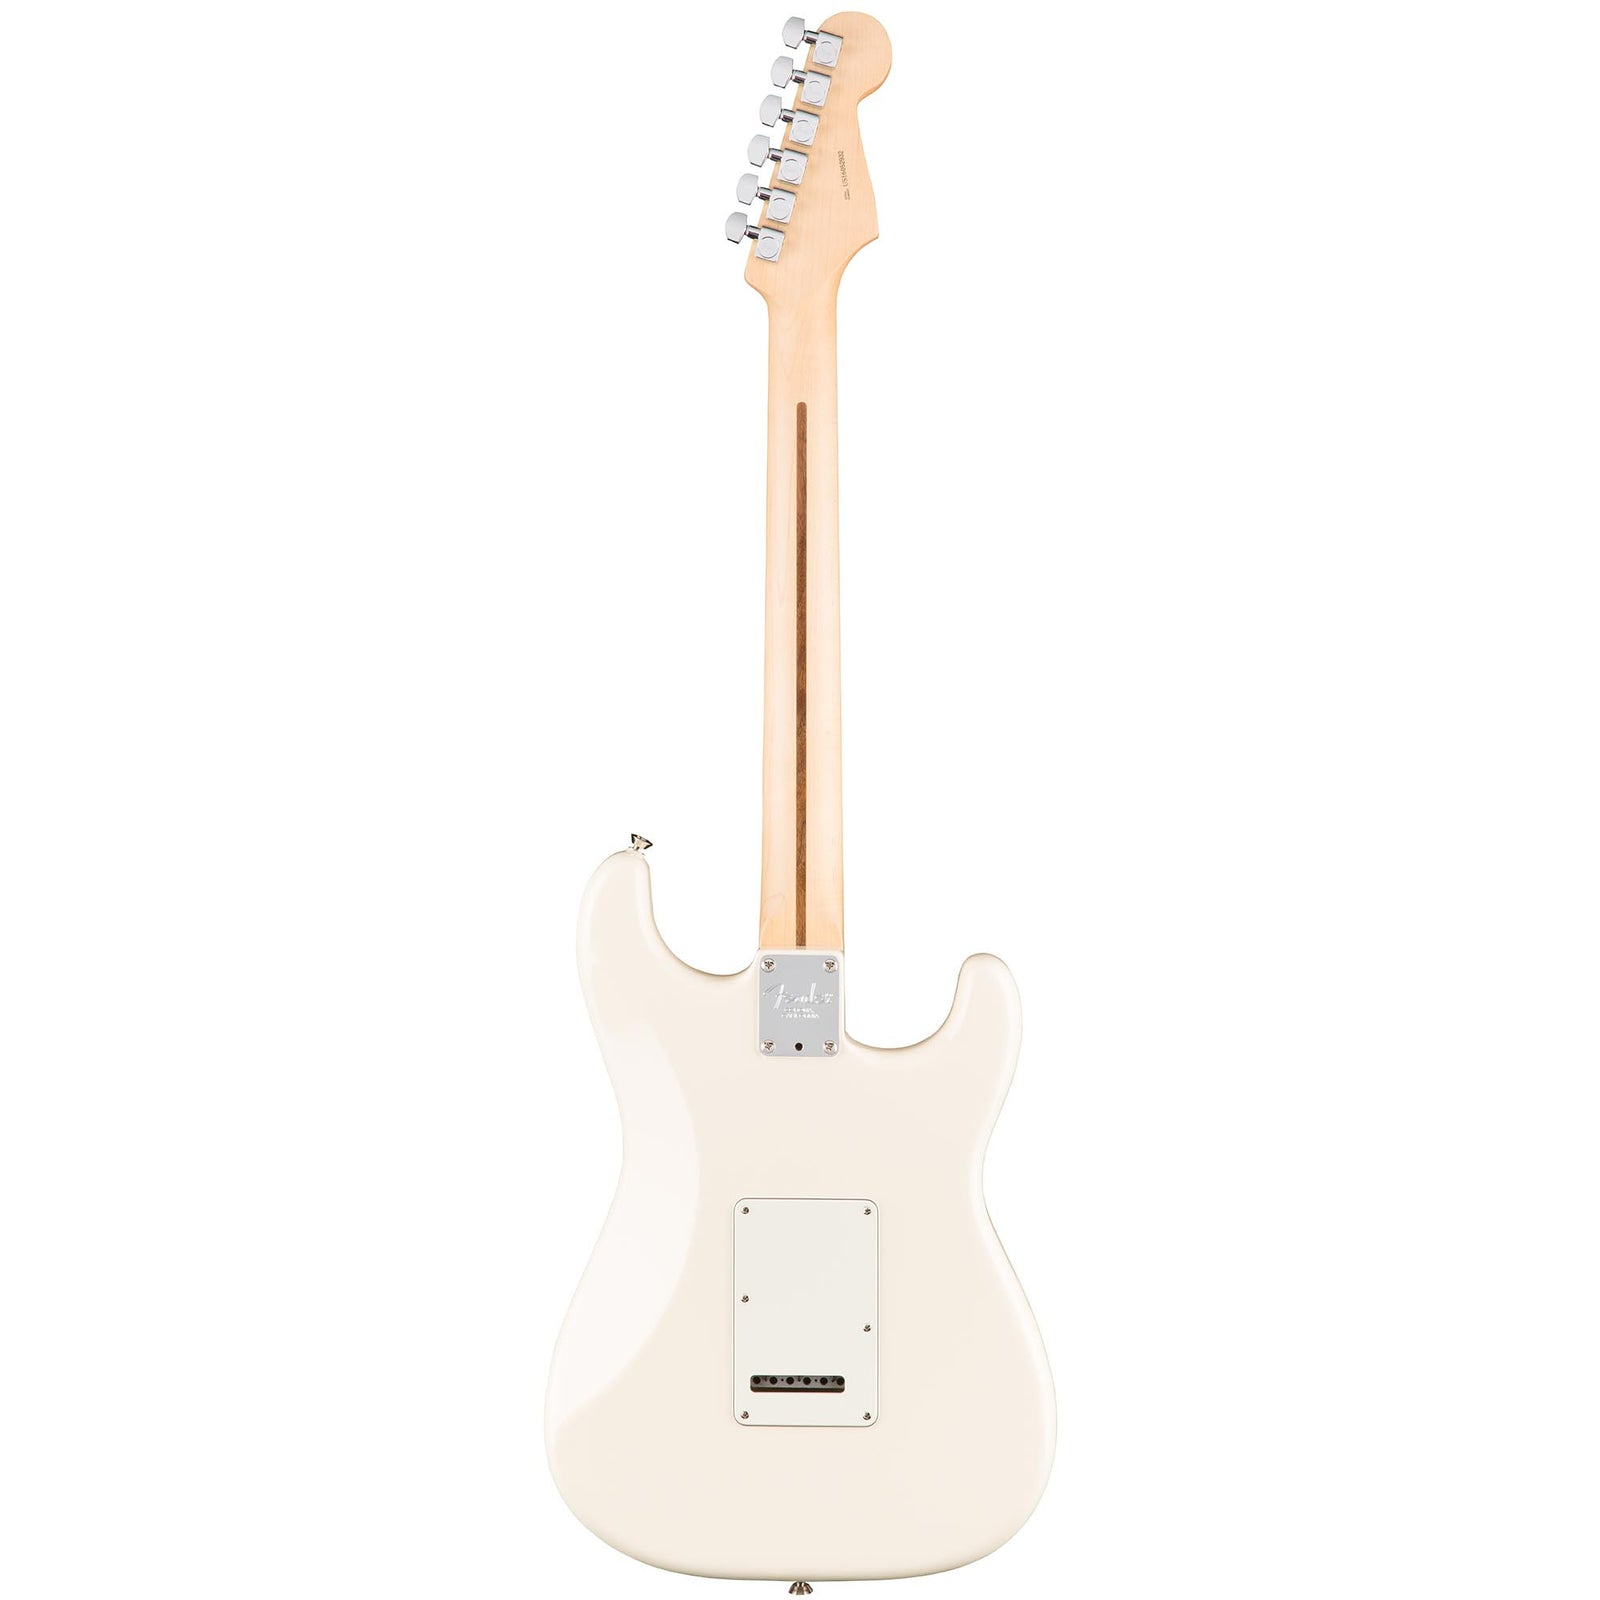 Fender American Professional Stratocaster Left Handed - Olympic White - Rosewood